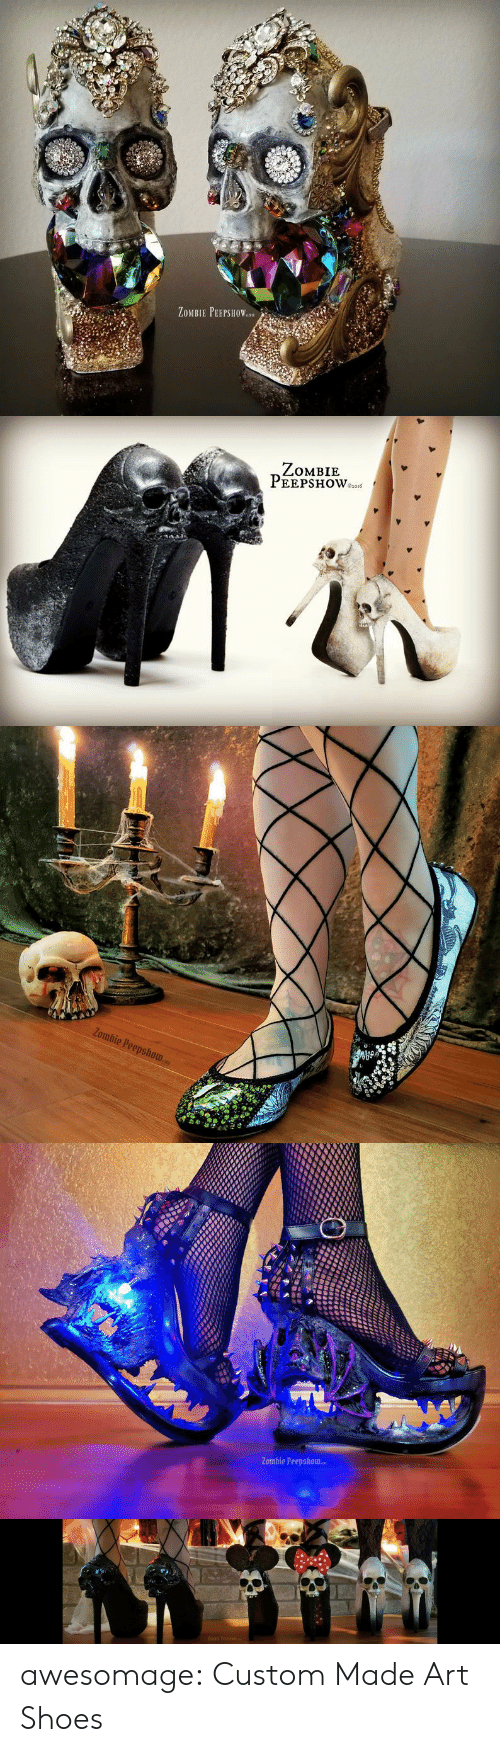 Shoes, Tumblr, and Blog: ZOMBIE PEEPSHOWn   ZомBIE  PEEPSHOWo   Zombie Peepshow   Zombie Peepshow   ZOMBIE PEEPSHOW awesomage:  Custom Made Art Shoes